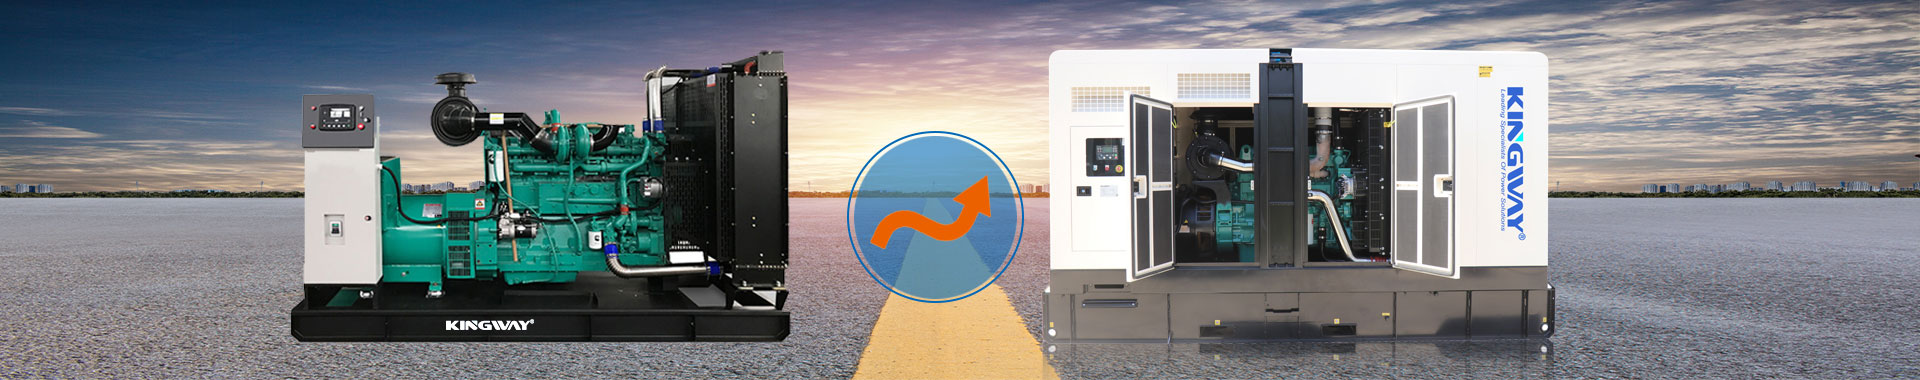 The Leading Diesel Generator,Gas Generator, Zone 2 Equipment Manufacturer in China